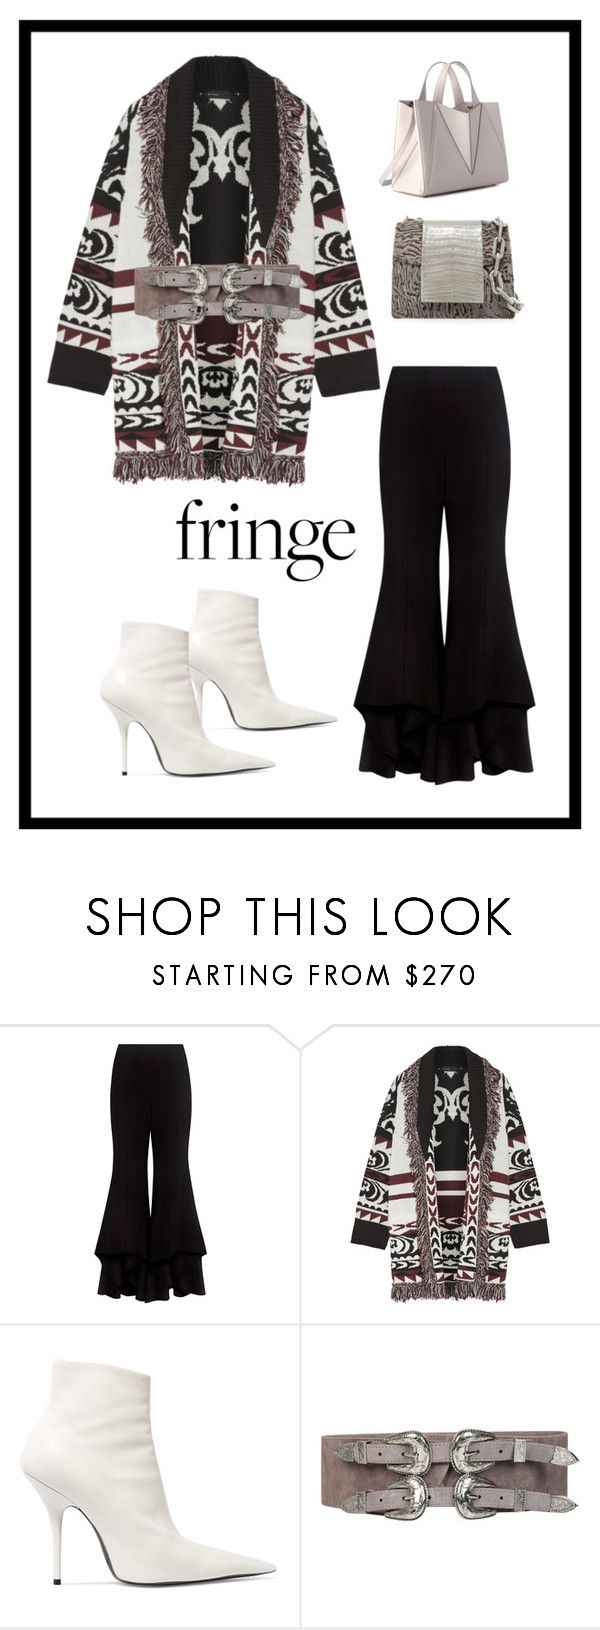 """""""Untitled #78"""" by qirong-wendy ❤ liked on Polyvore featuring Alexis, Etro, Balenciaga and Nancy Gonzalez"""